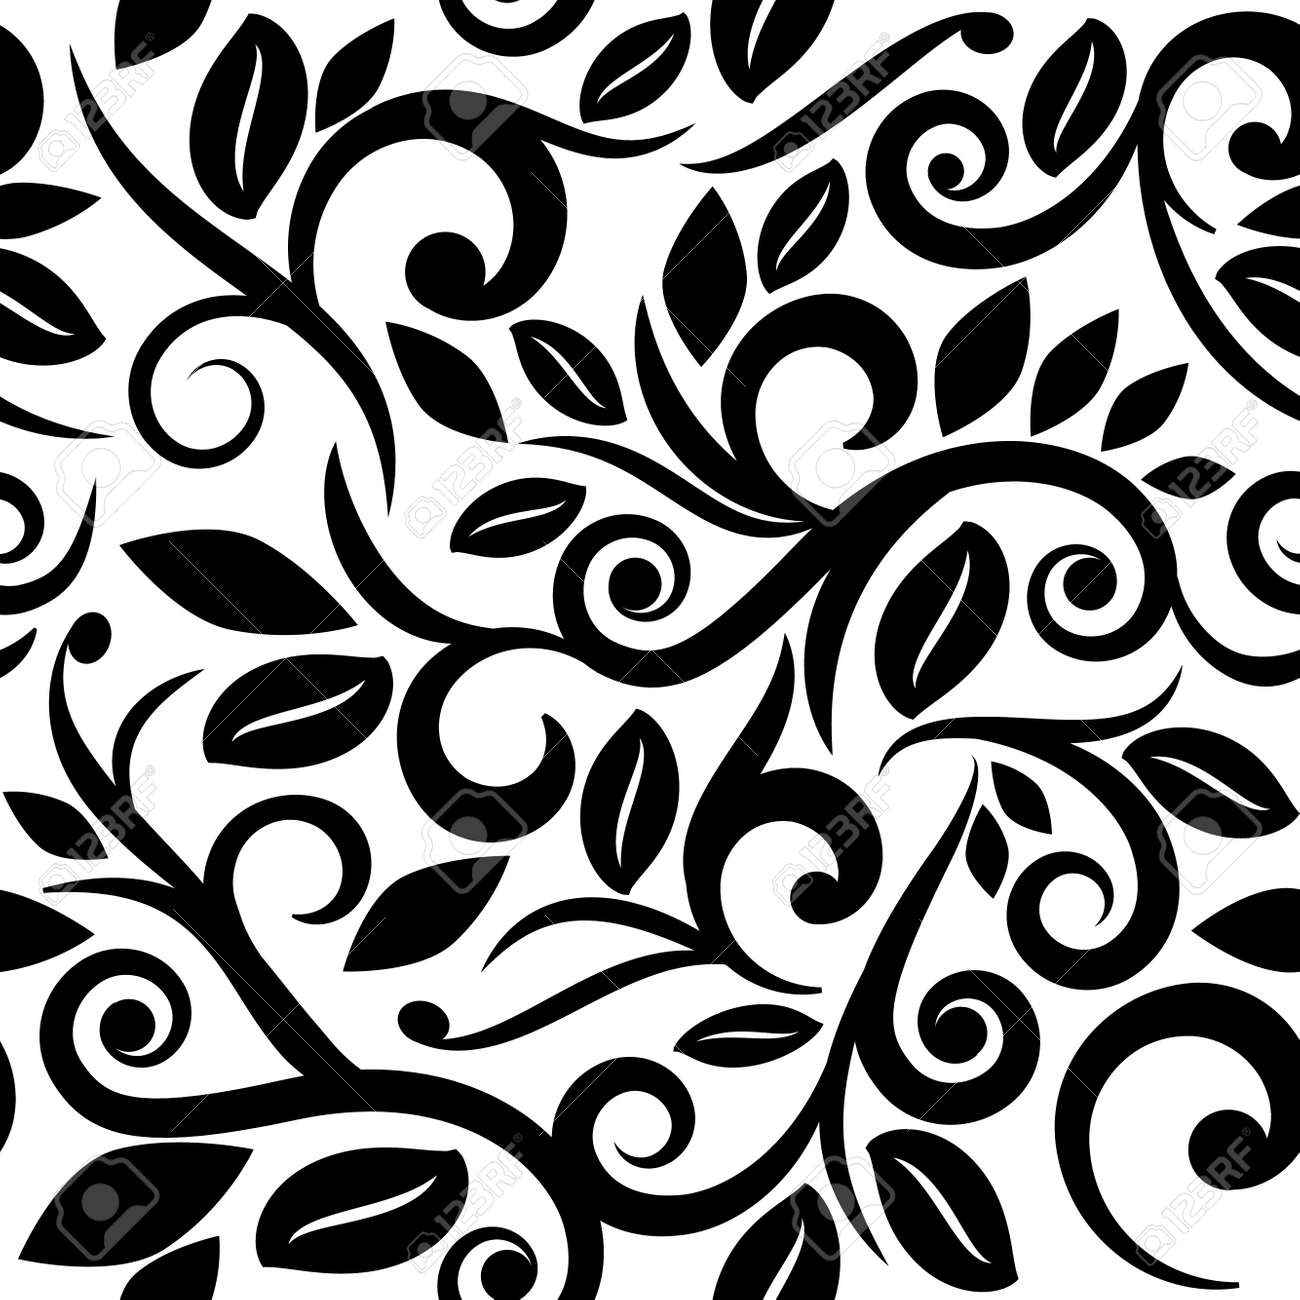 Black And White Or Transparent Seamless Floral Background Square